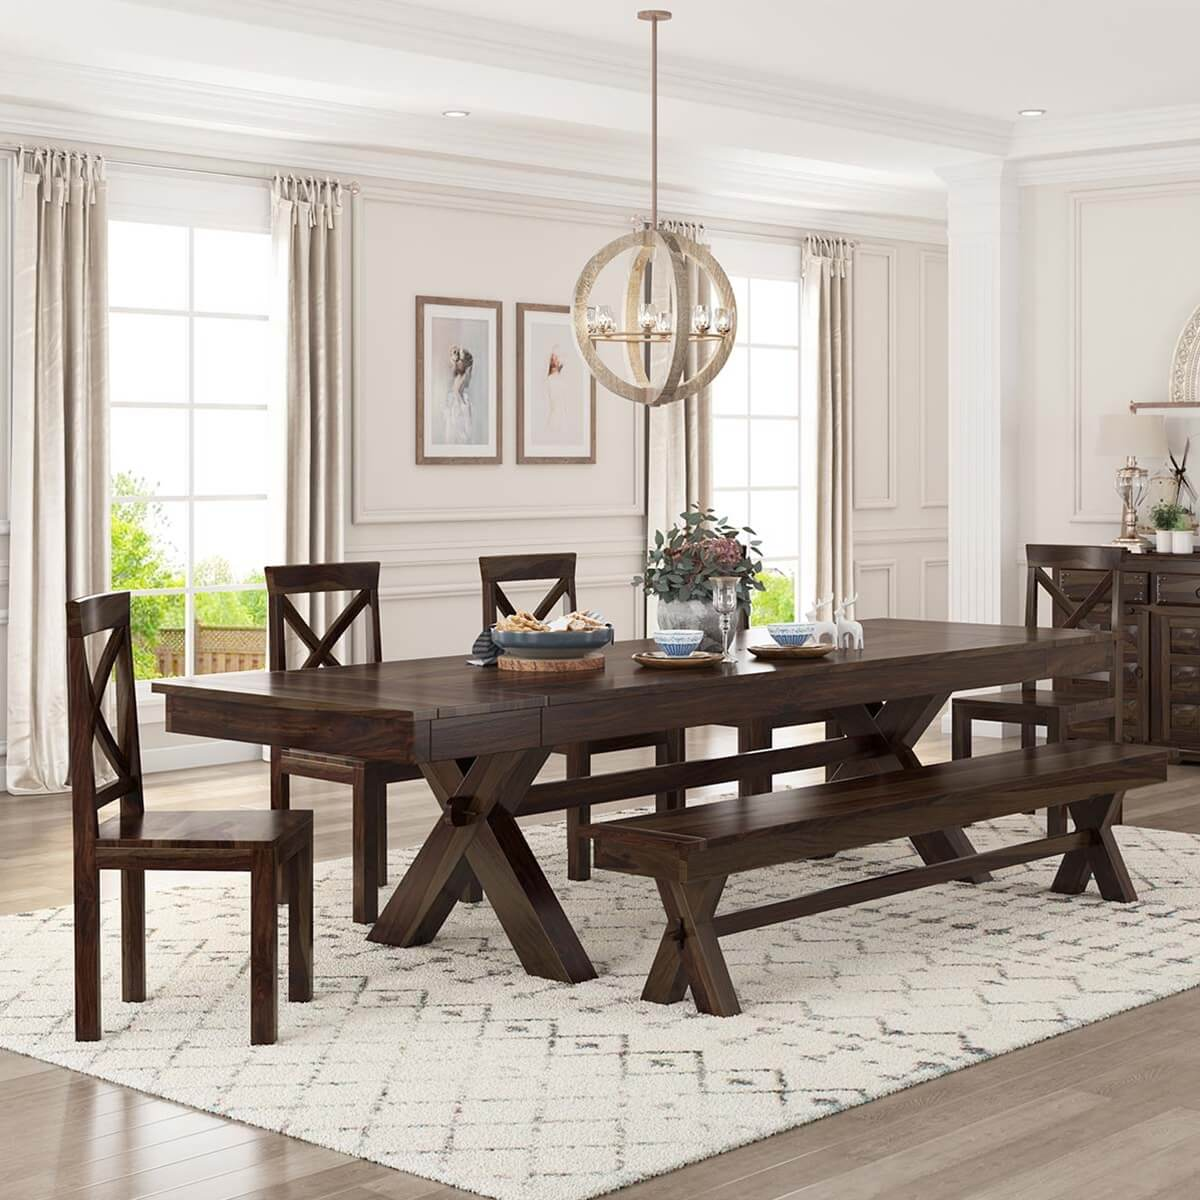 Westside indoor picnic style dining table bench set with for Dinette set with bench